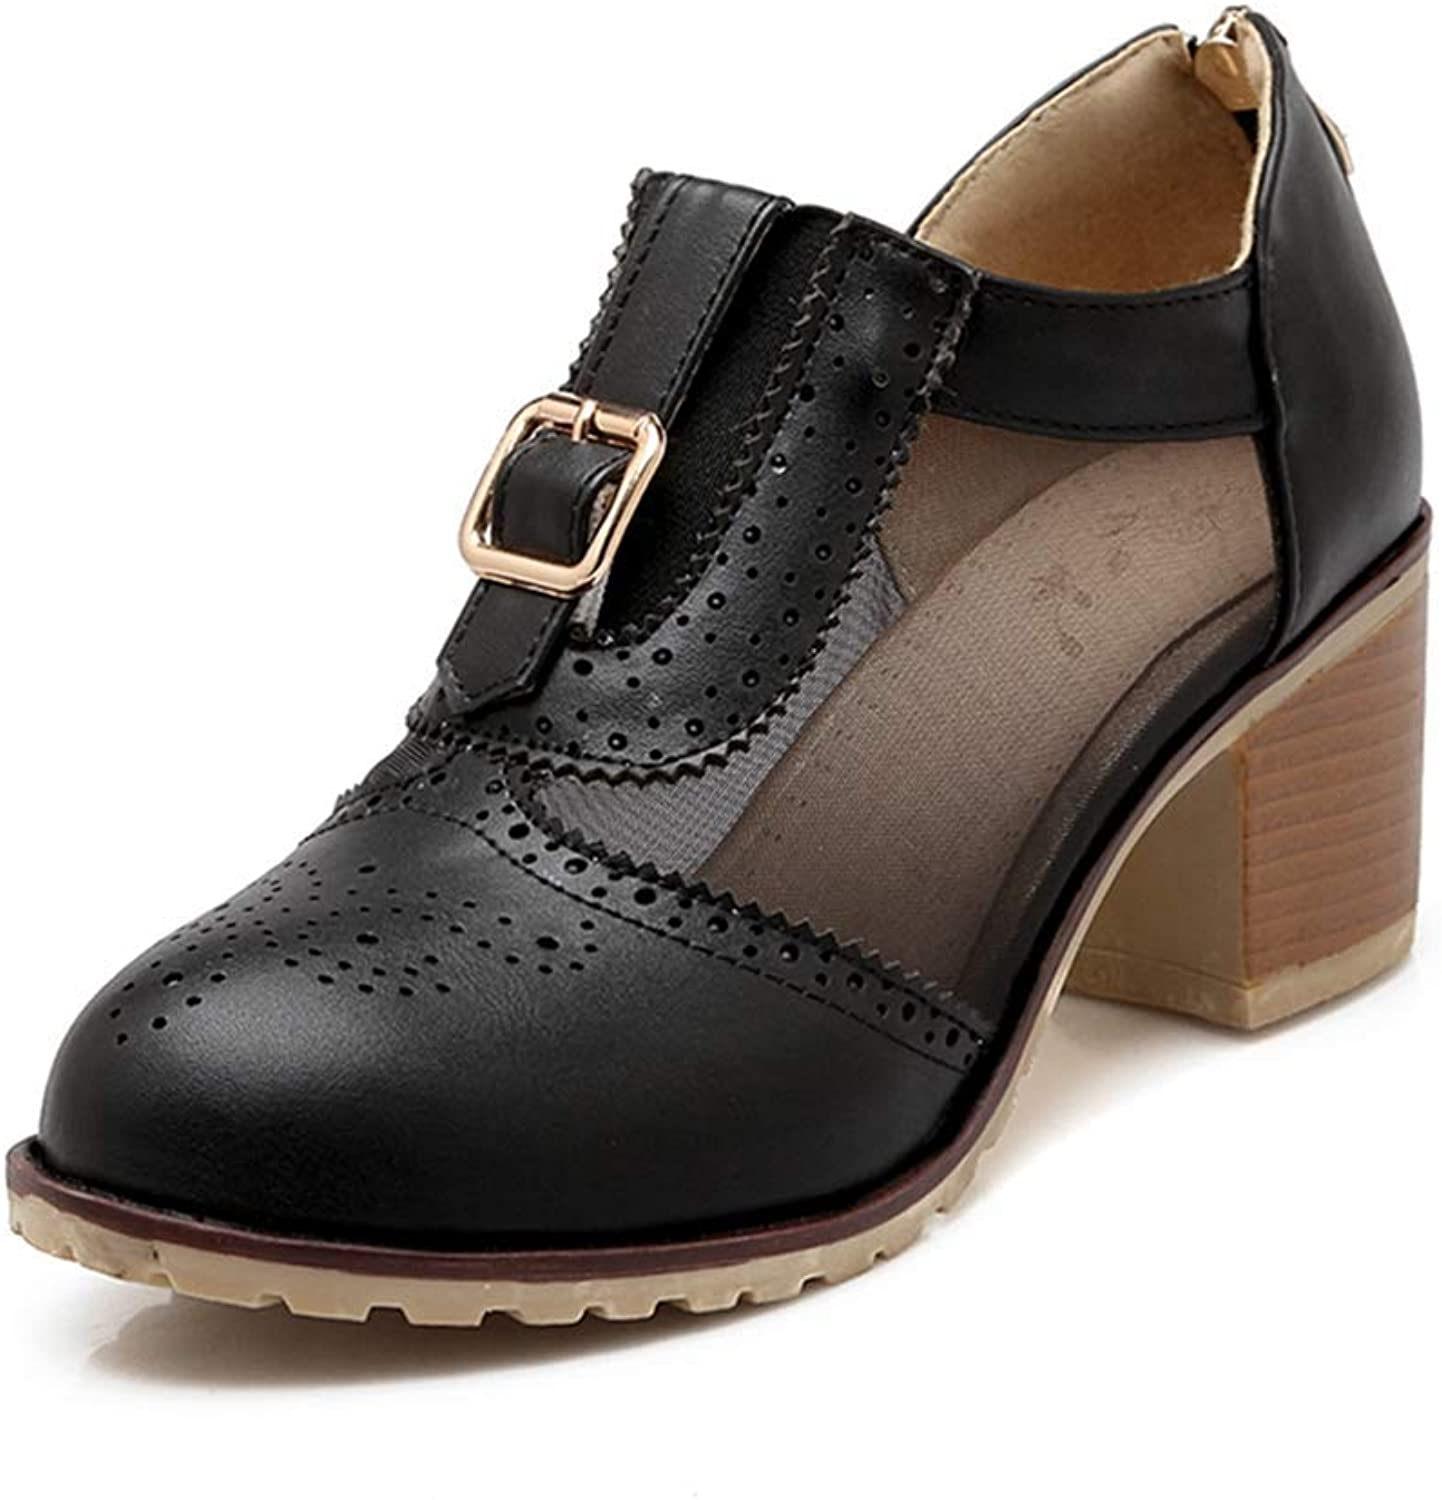 Beautiful - Fashion Women's Platform Buckle Oxford Pump Chunky Mid Heel Mesh Perforated Zipper Vintage Dress Oxfords shoes